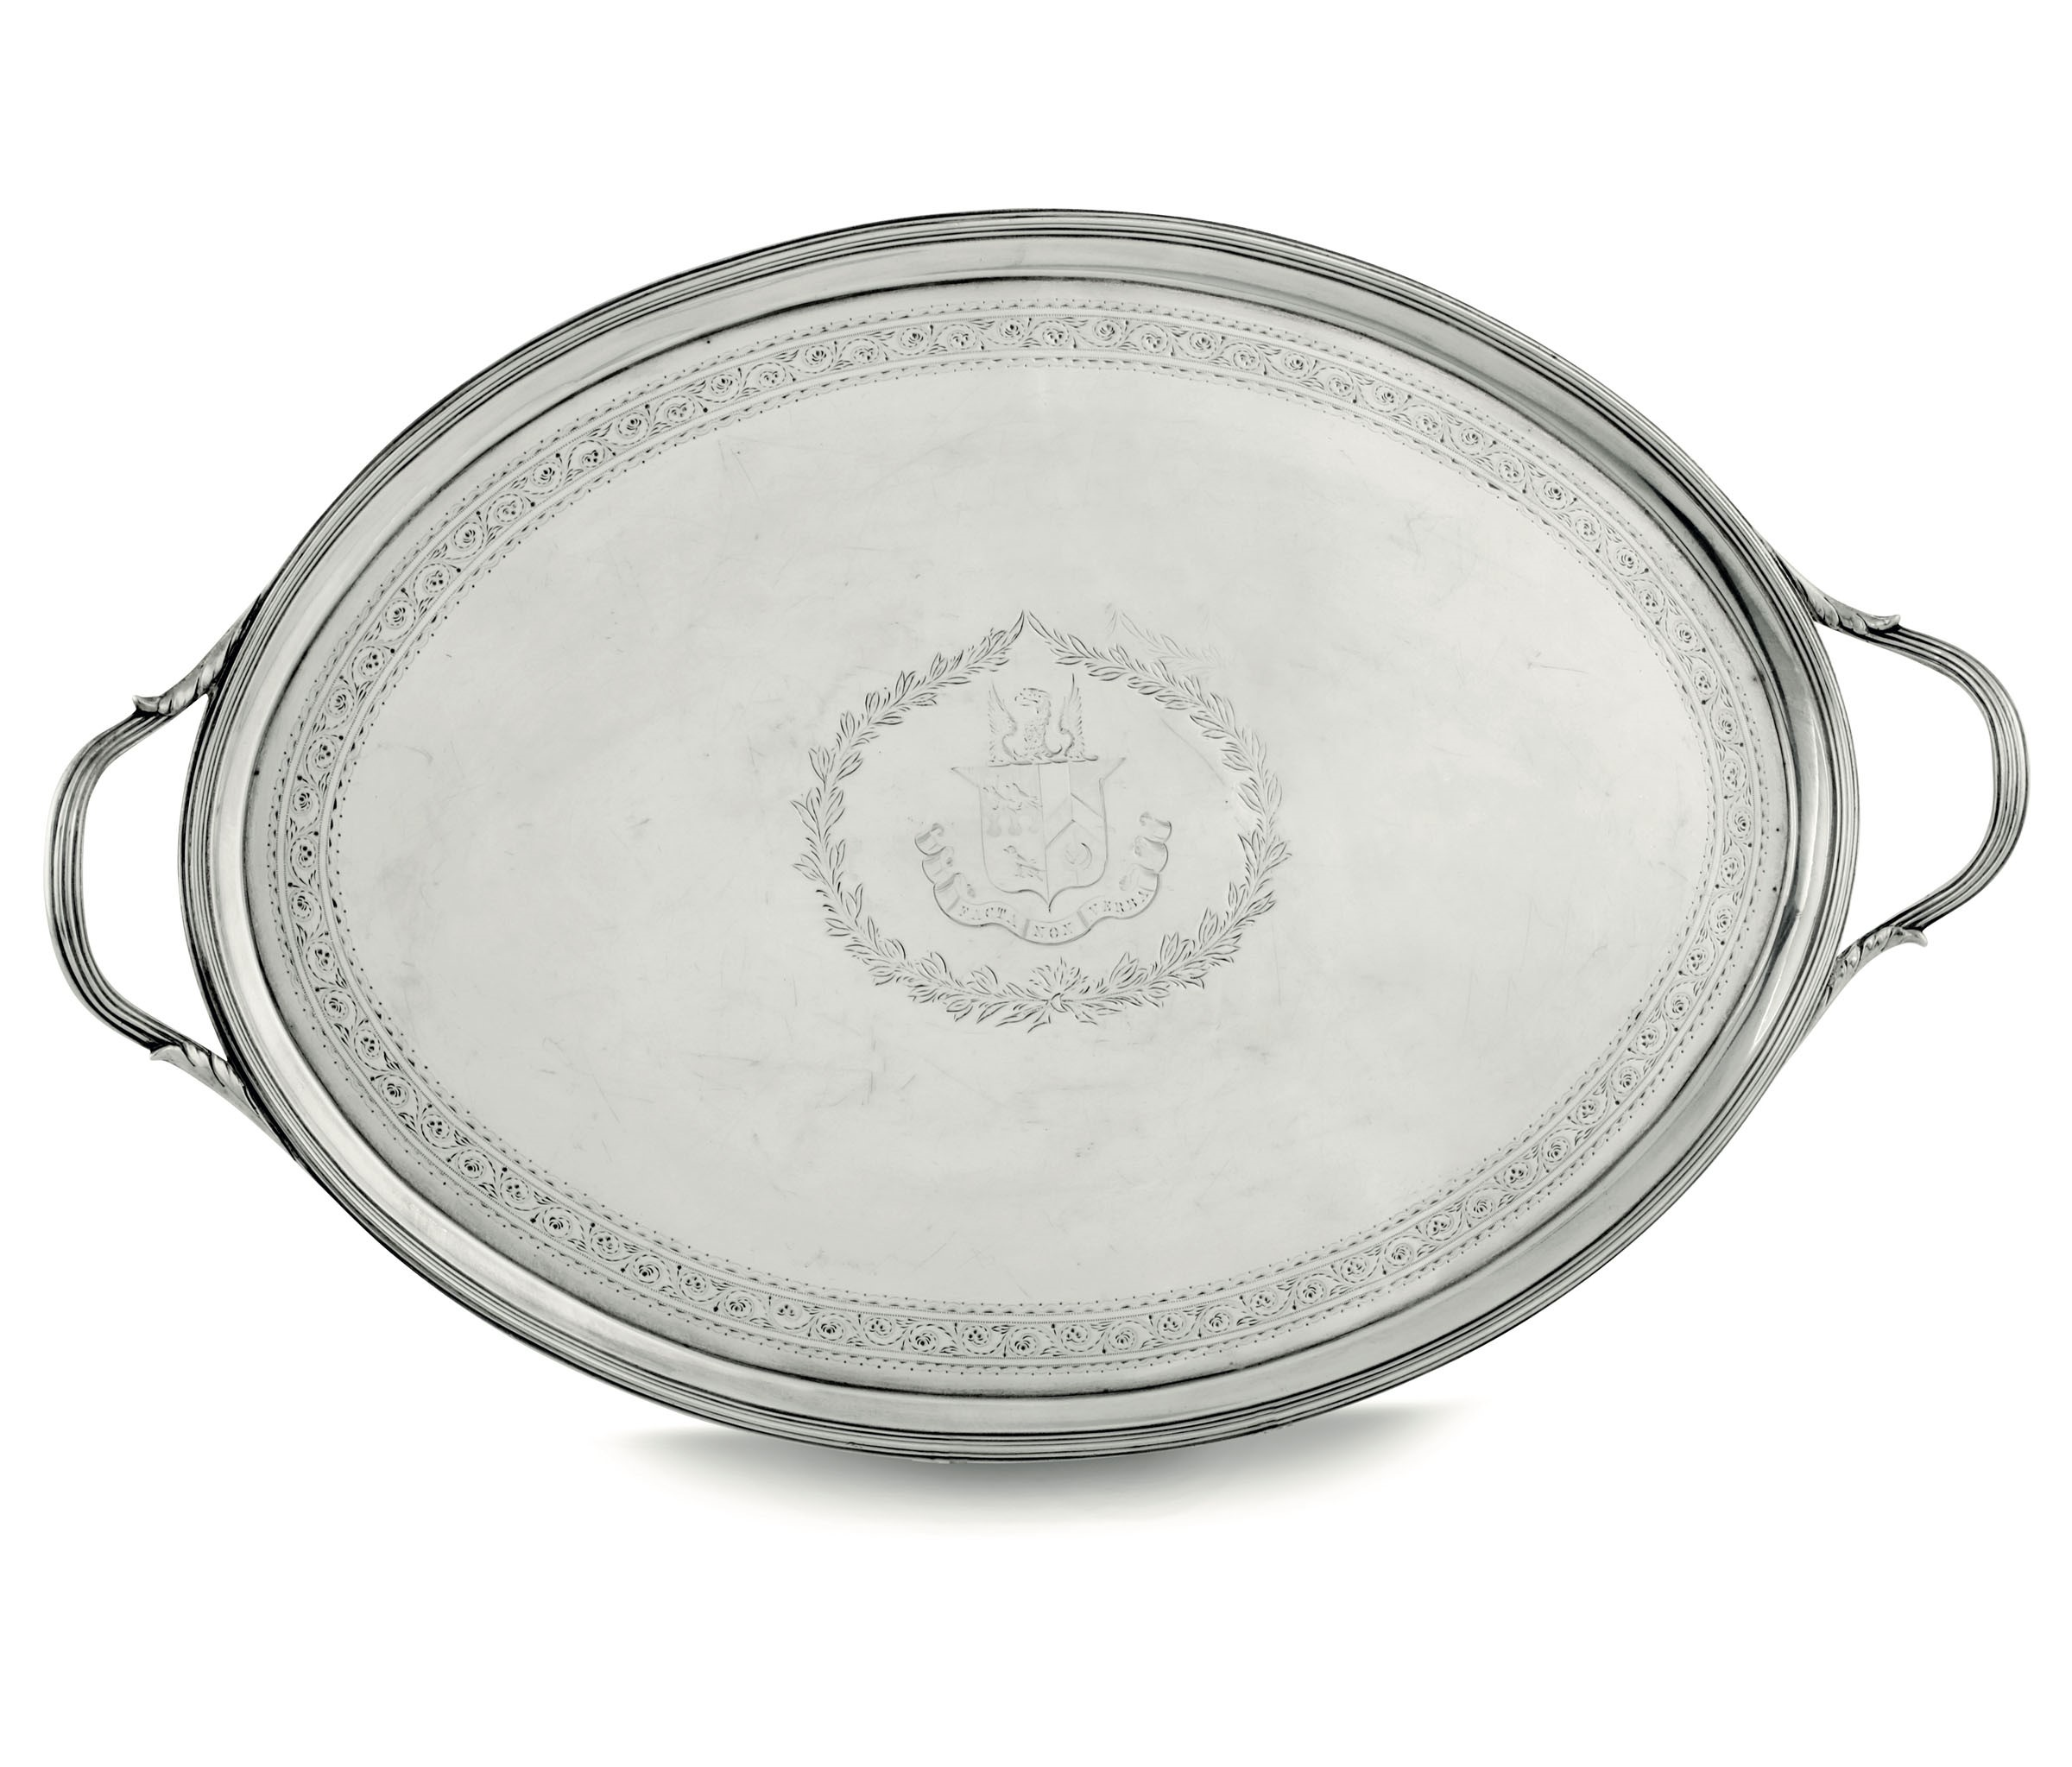 Lot 12 - A silver glove tray, London, 1793 - Molten, embossed and chiselled sterling silver. [...]